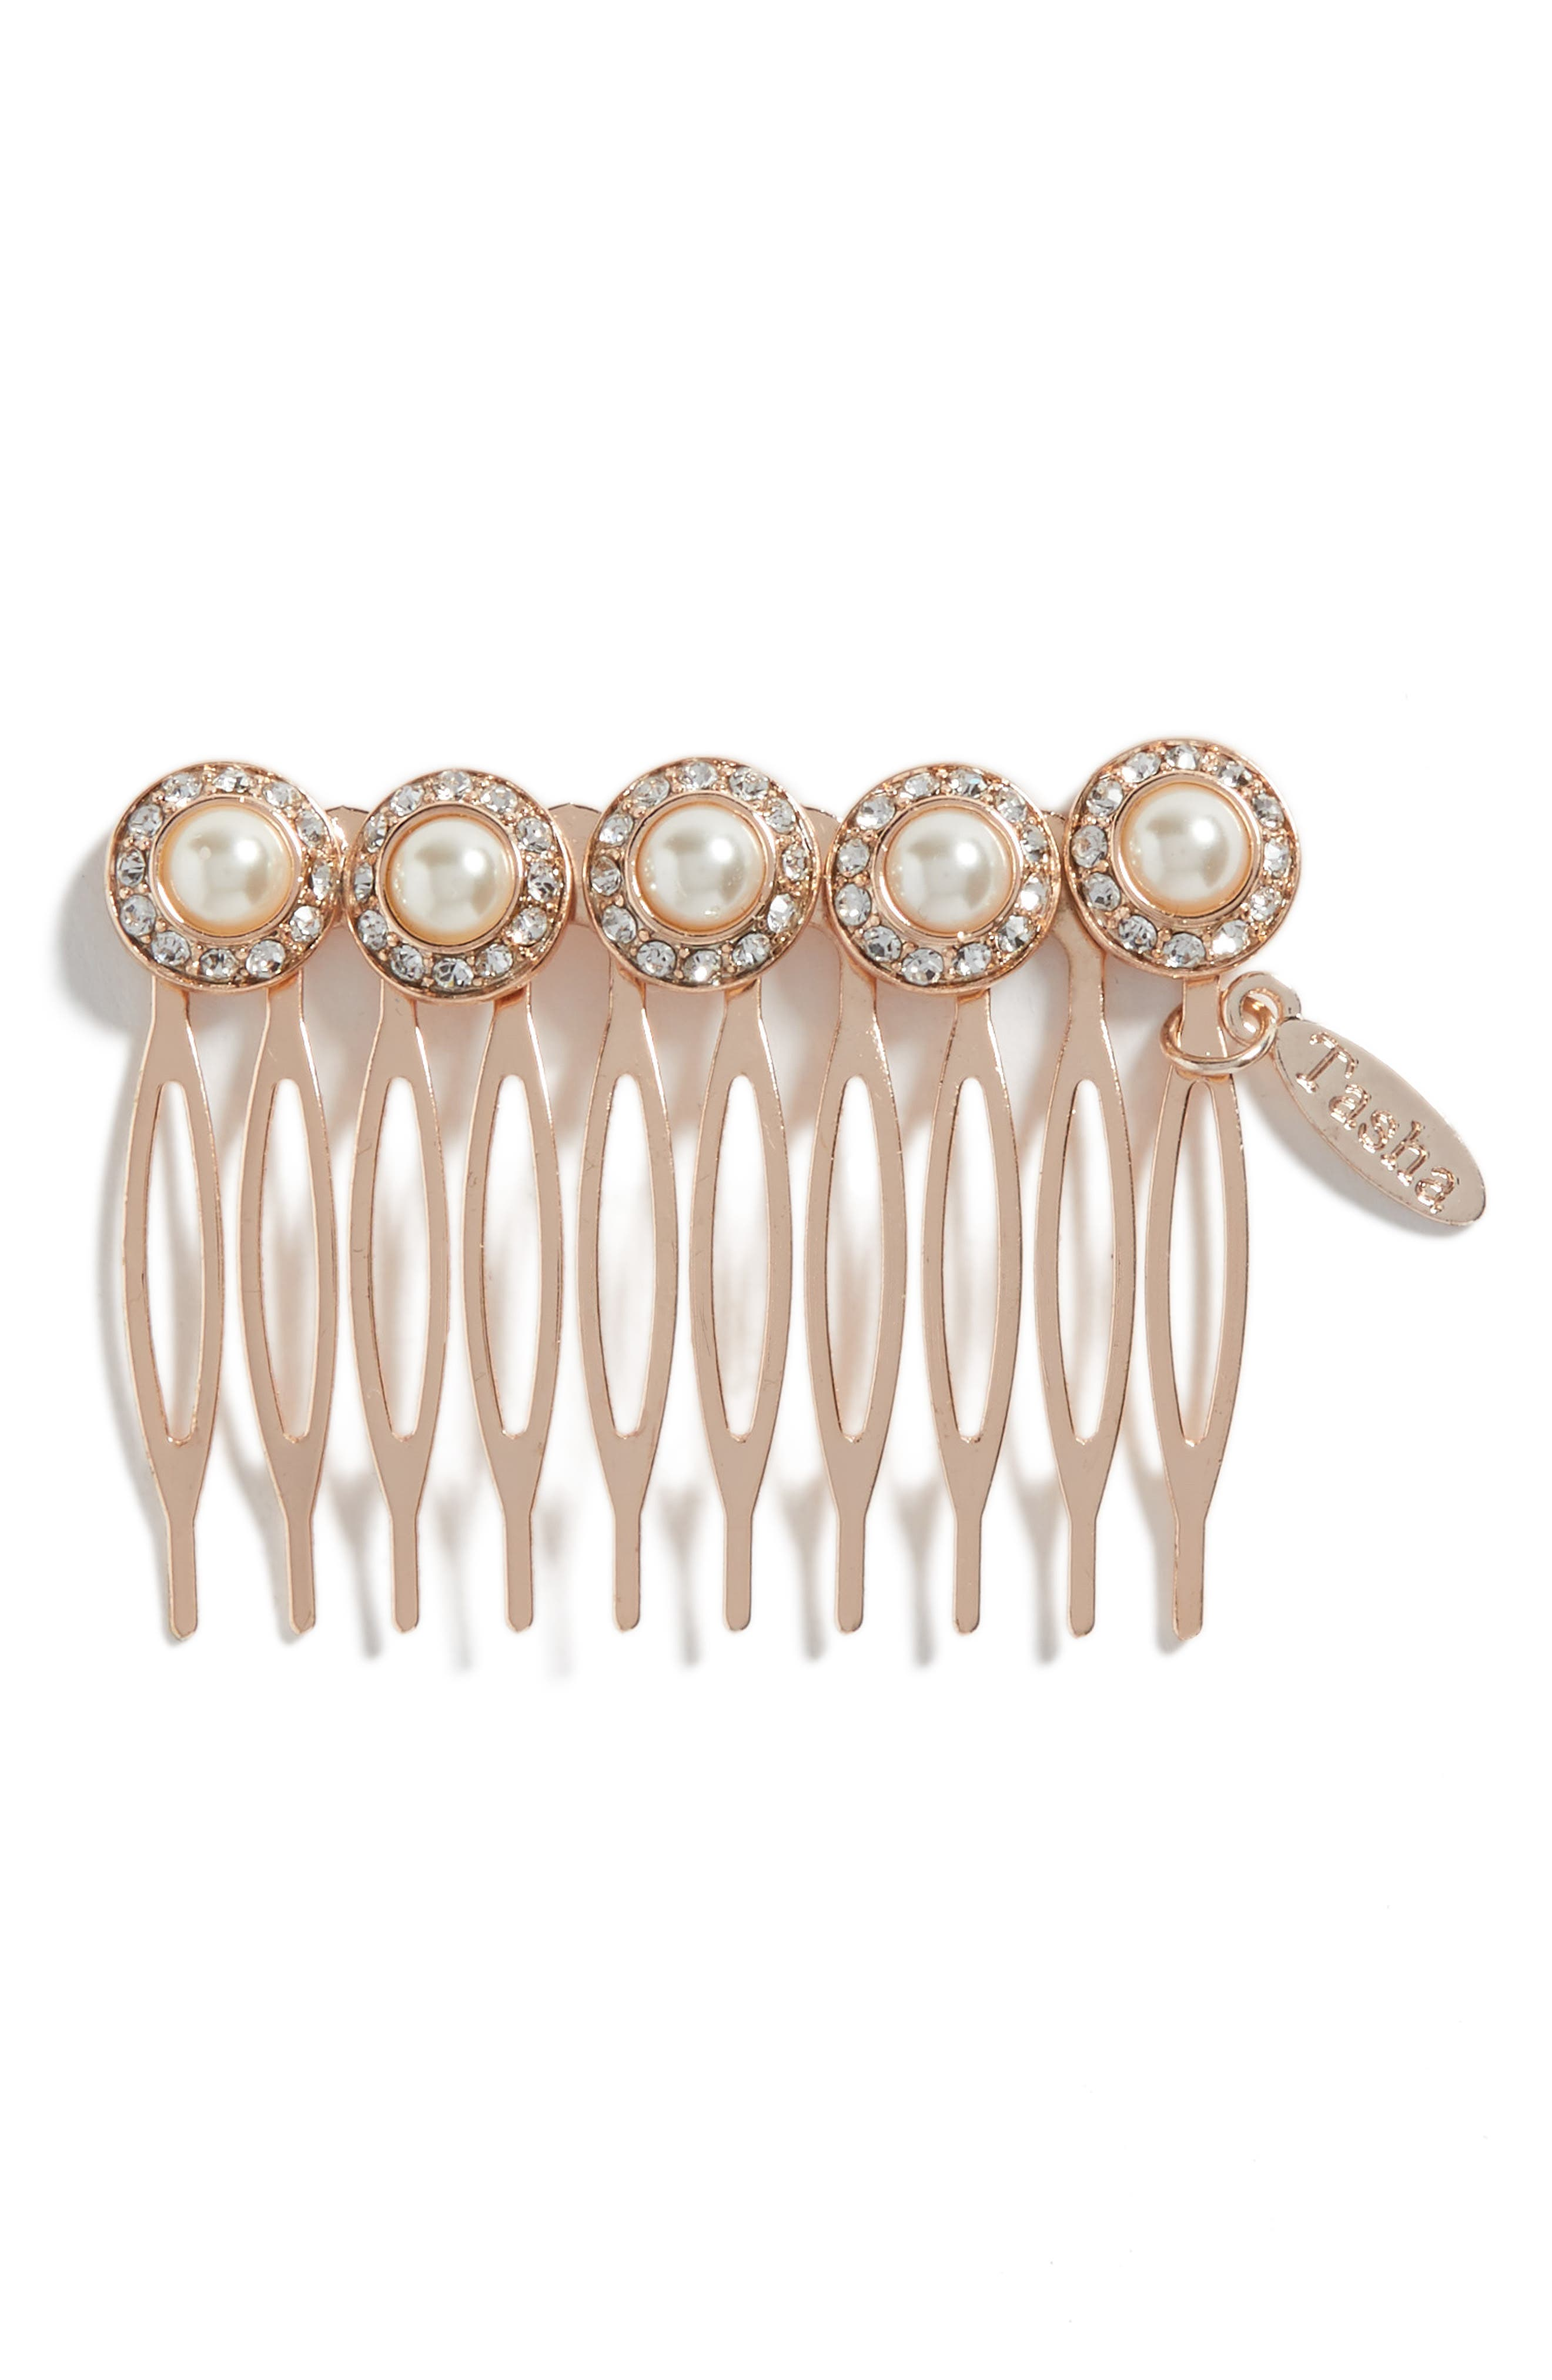 Imitation Pearl Embellished Hair Comb,                         Main,                         color, 220